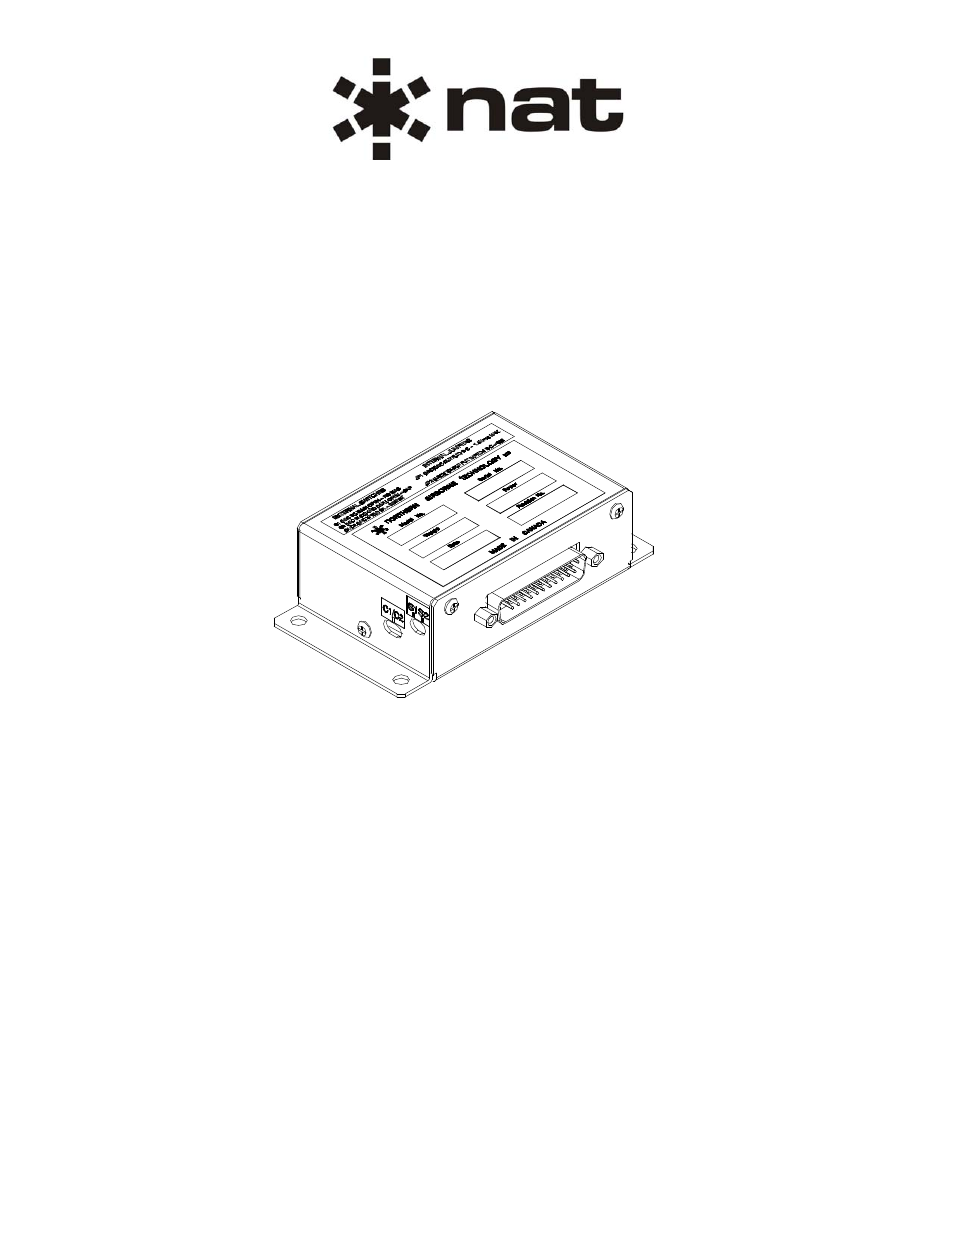 northern airborne technology aa34 user manual